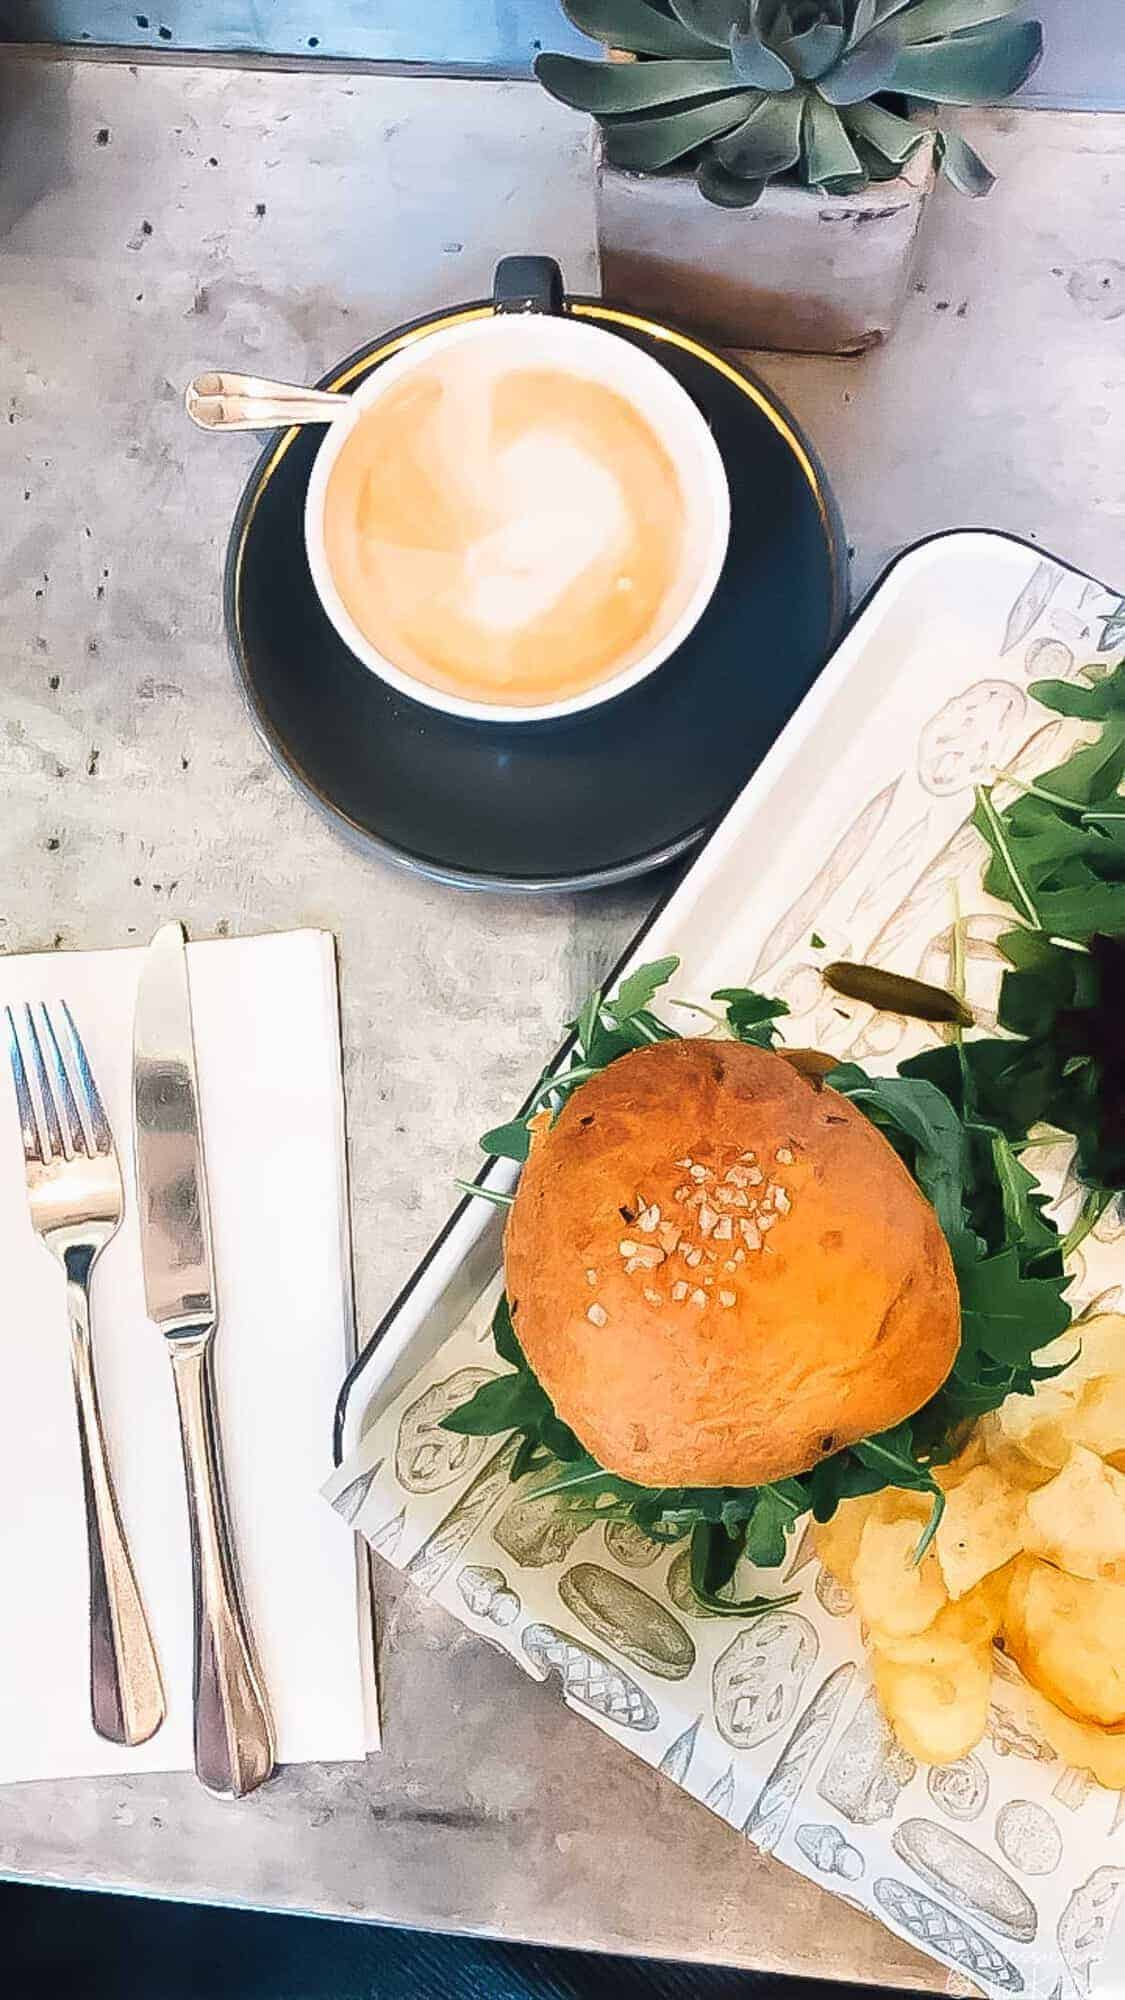 Top down view of a burger and coffee on a table.